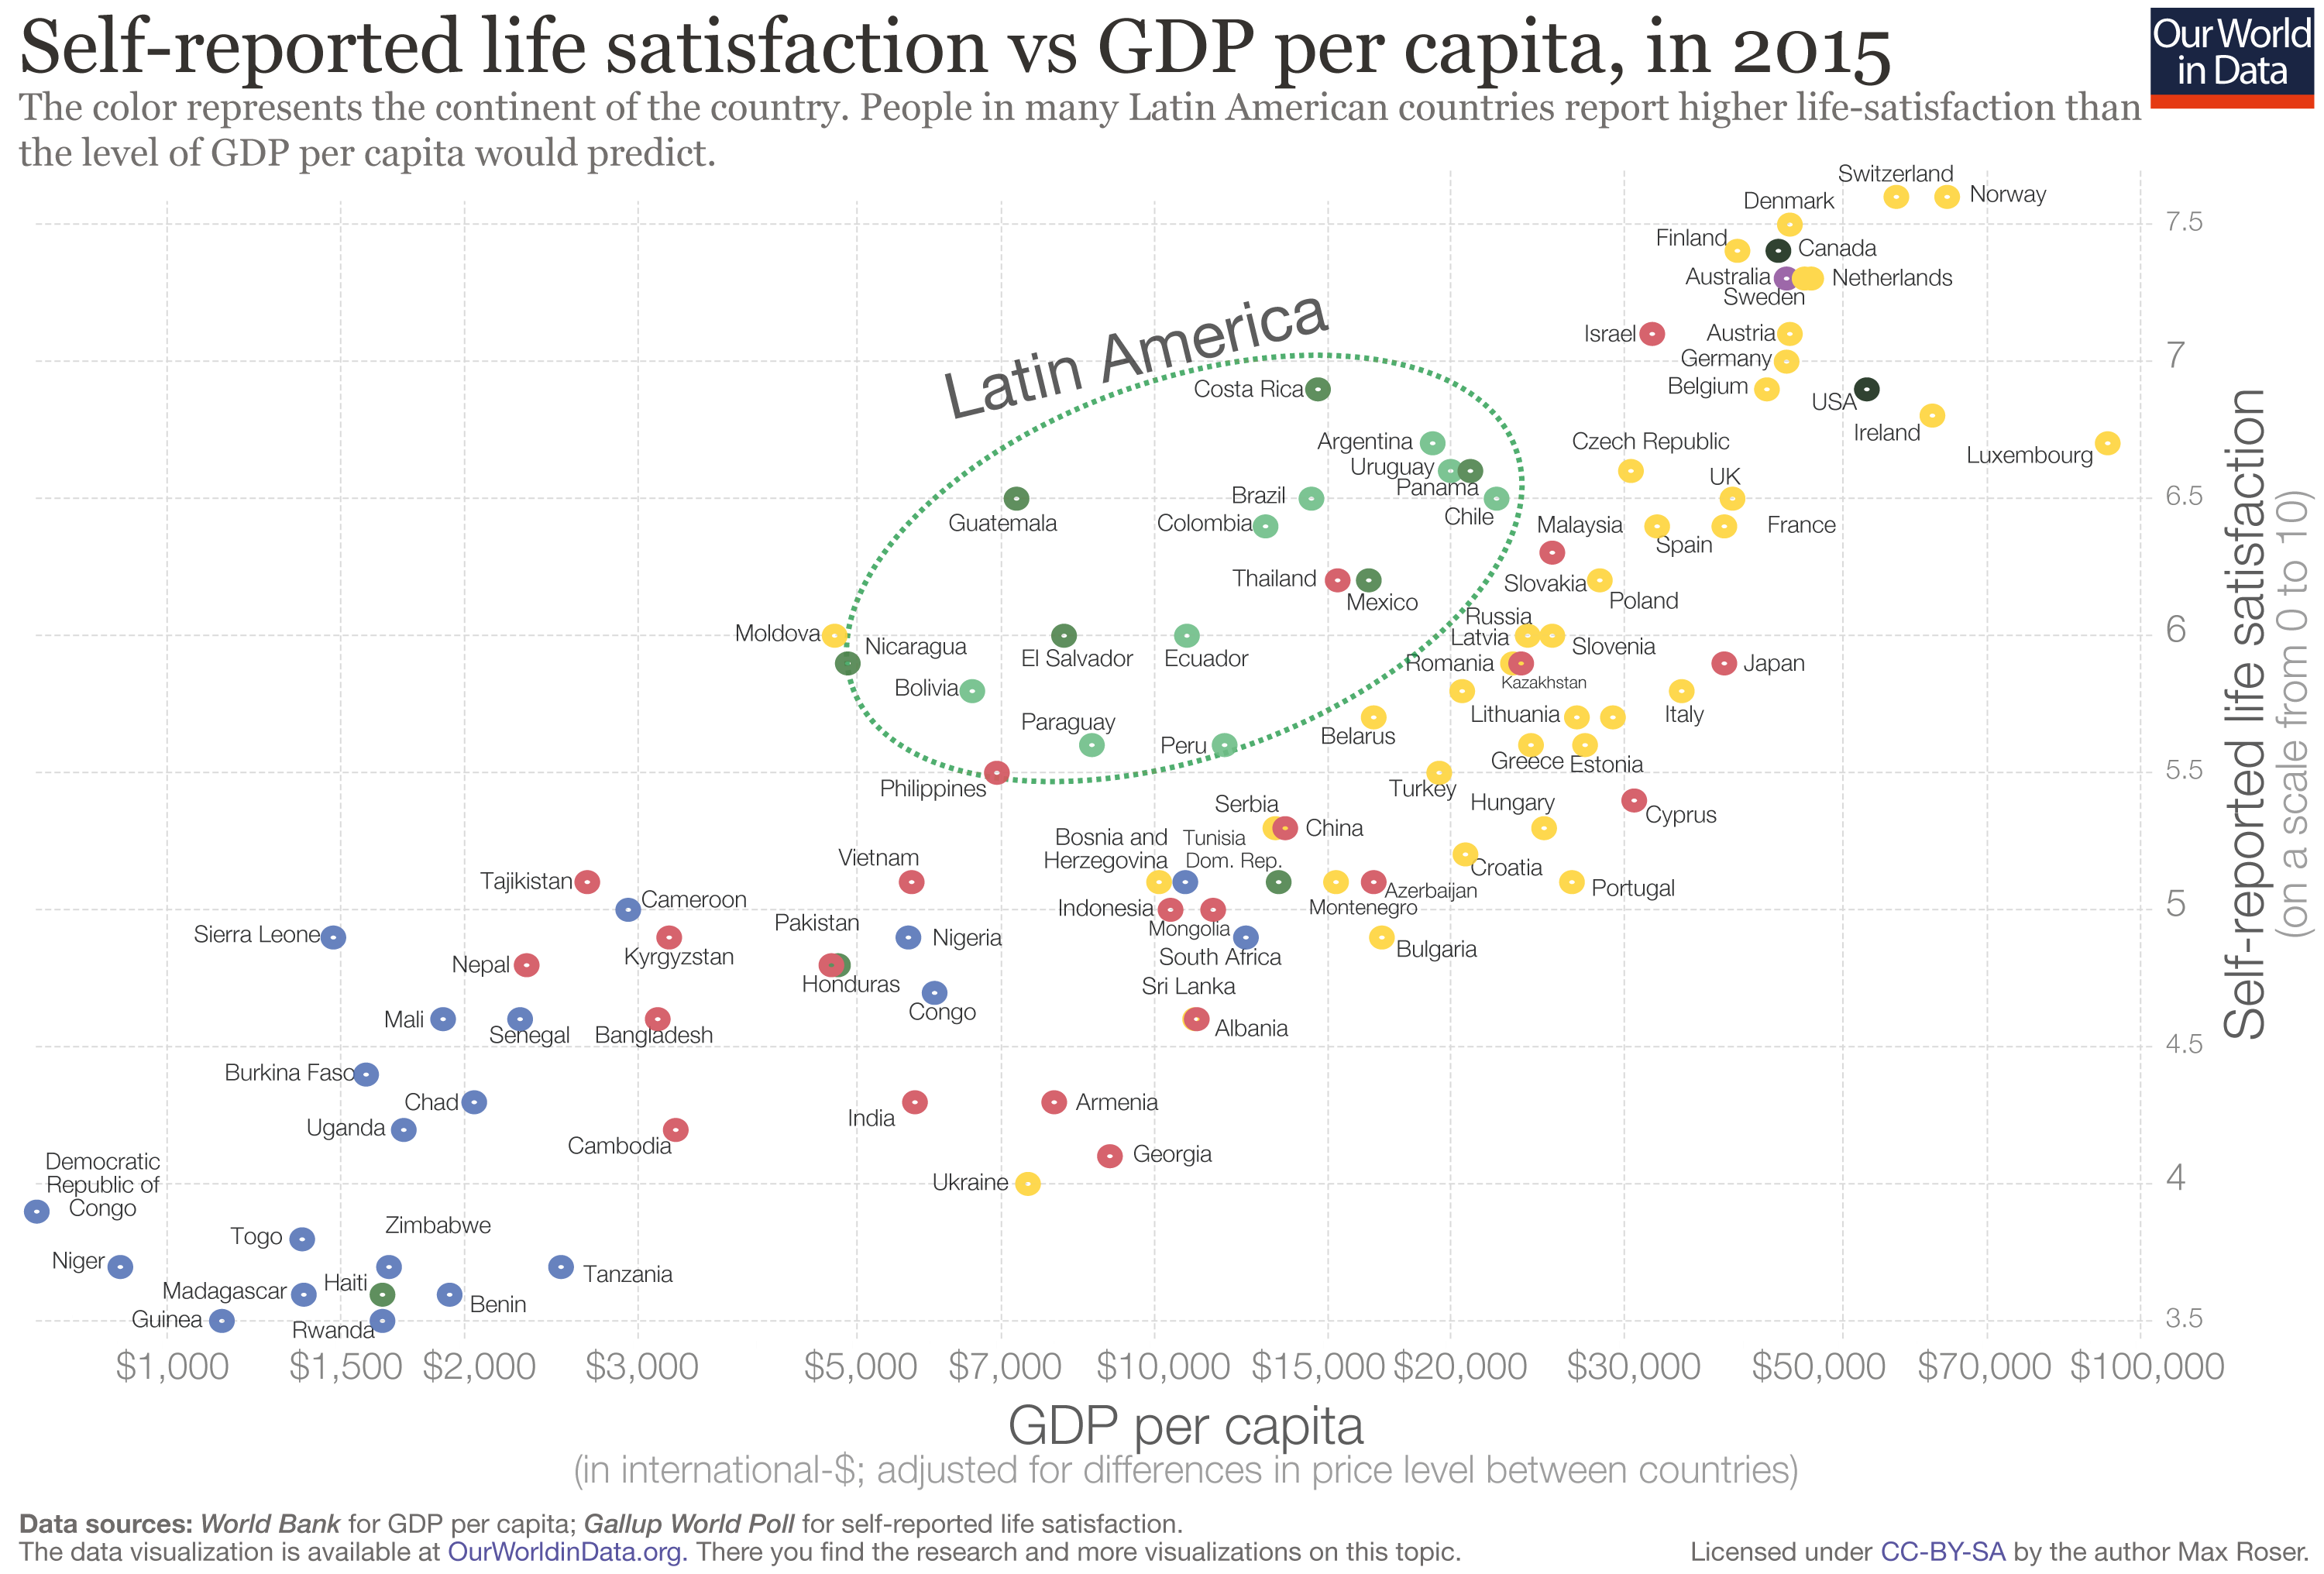 Self-reported life satisfaction vs GDP per capita, in 2015